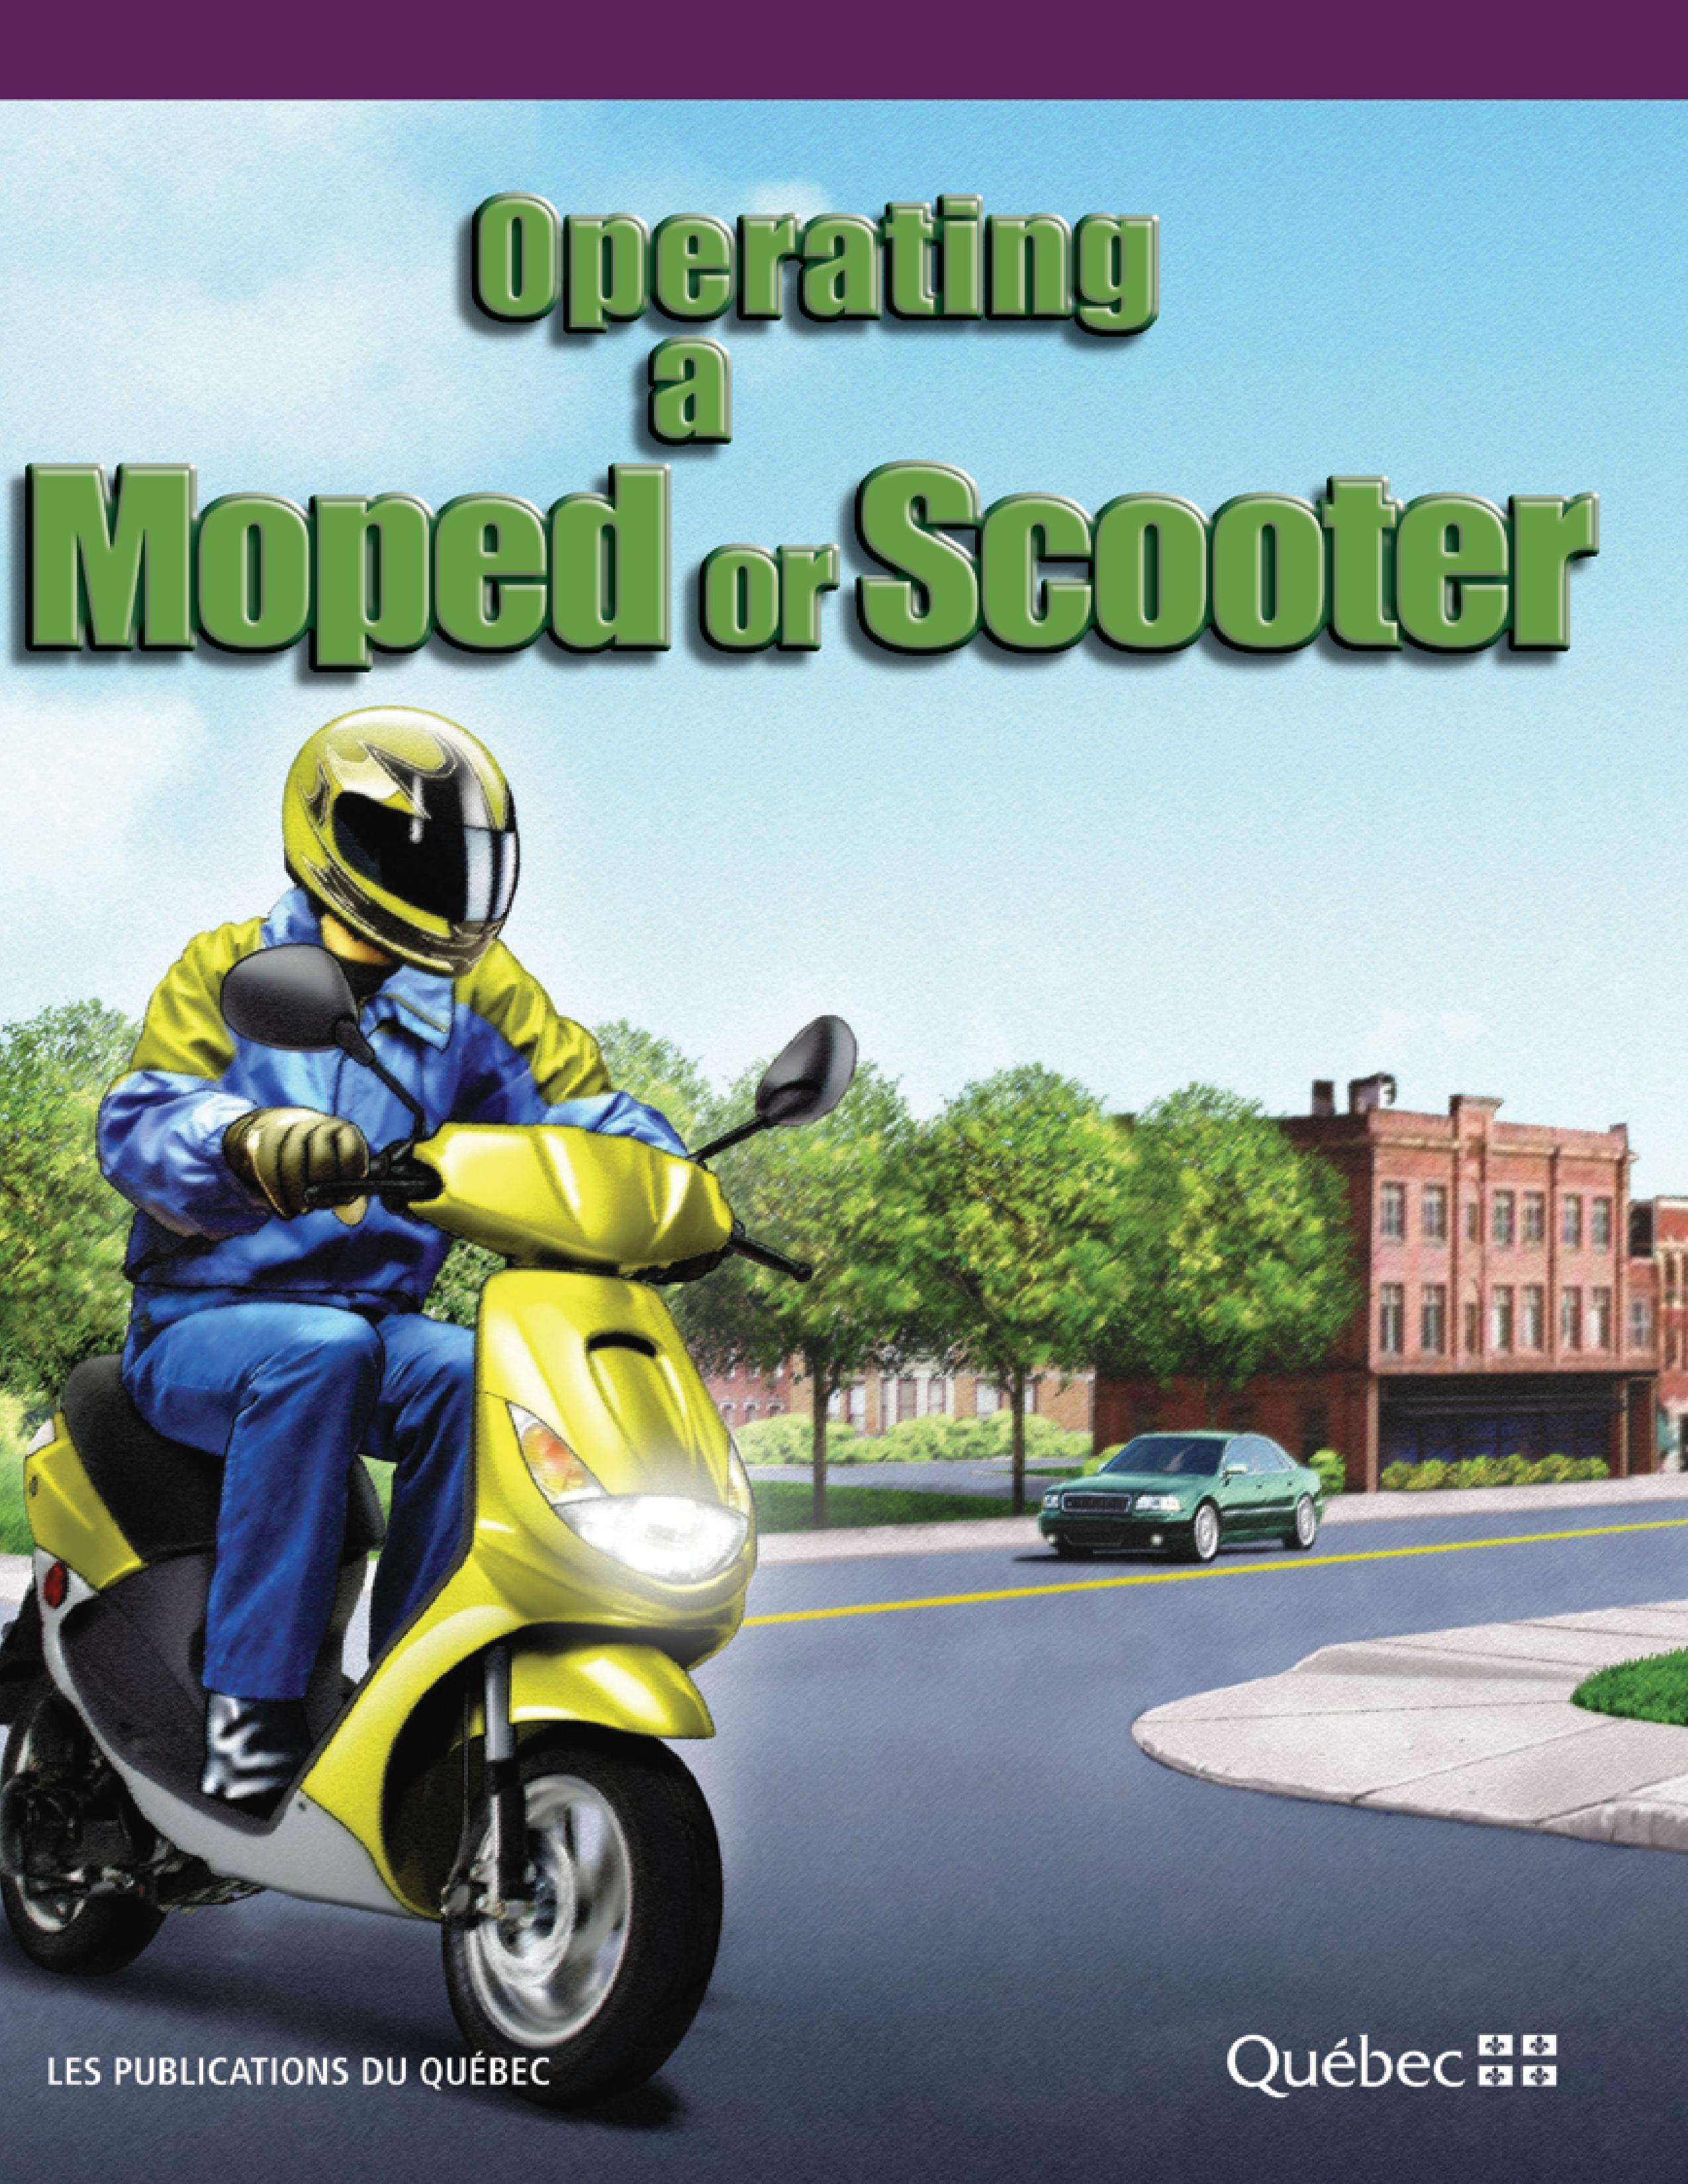 Operating a Moped or Scooter